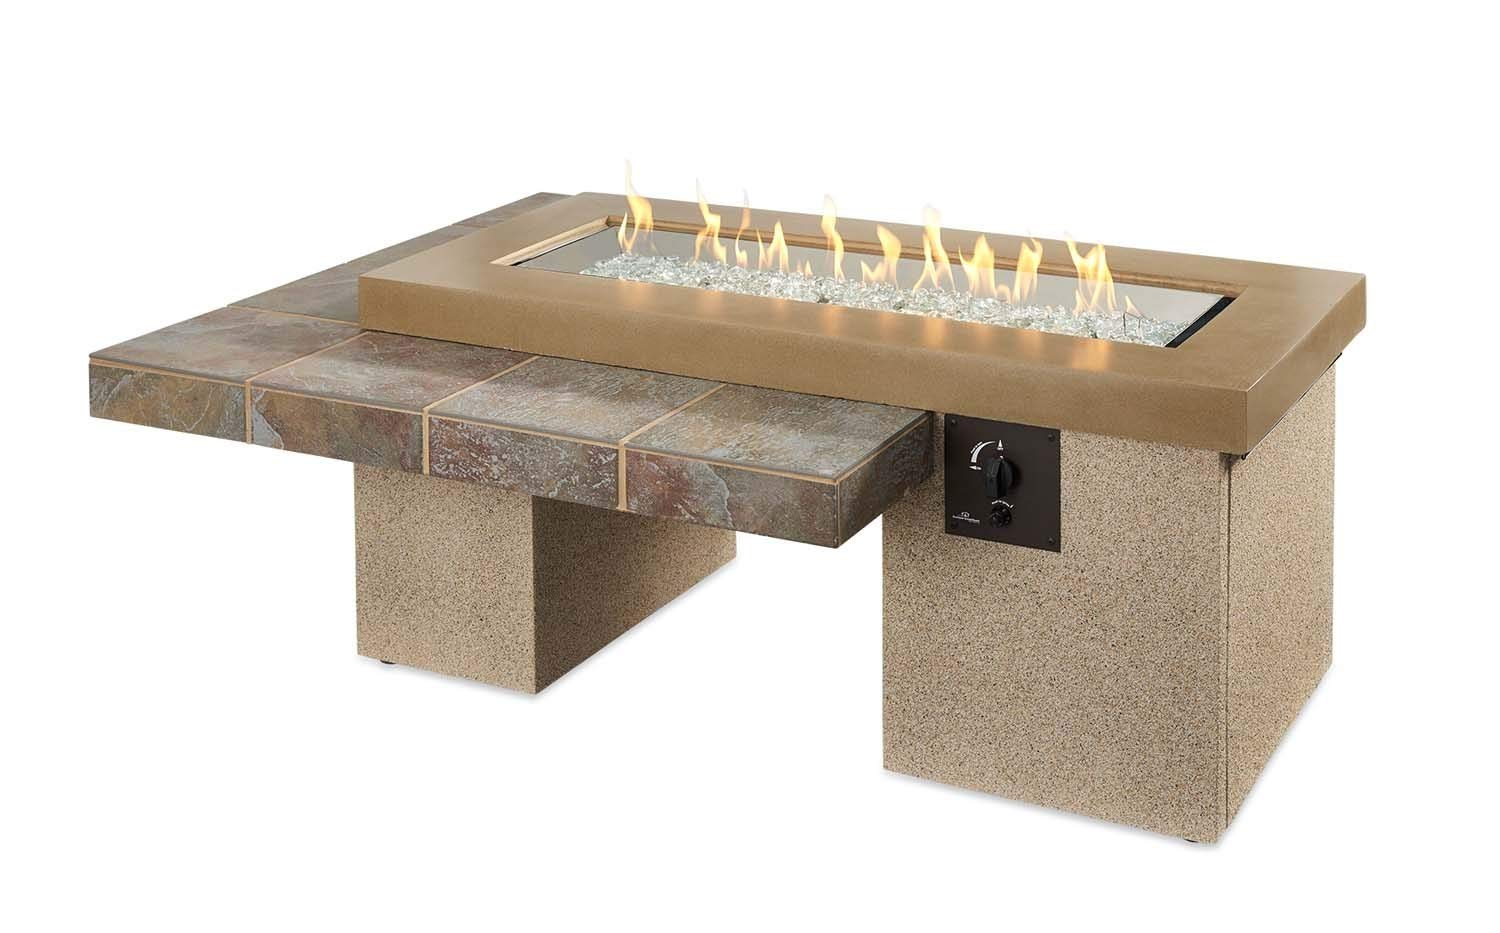 Outdoor Great Room Uptown Crystal Fire Pit Table with Tile Top and Rectangular Burner, Brown by The Outdoor GreatRoom Company